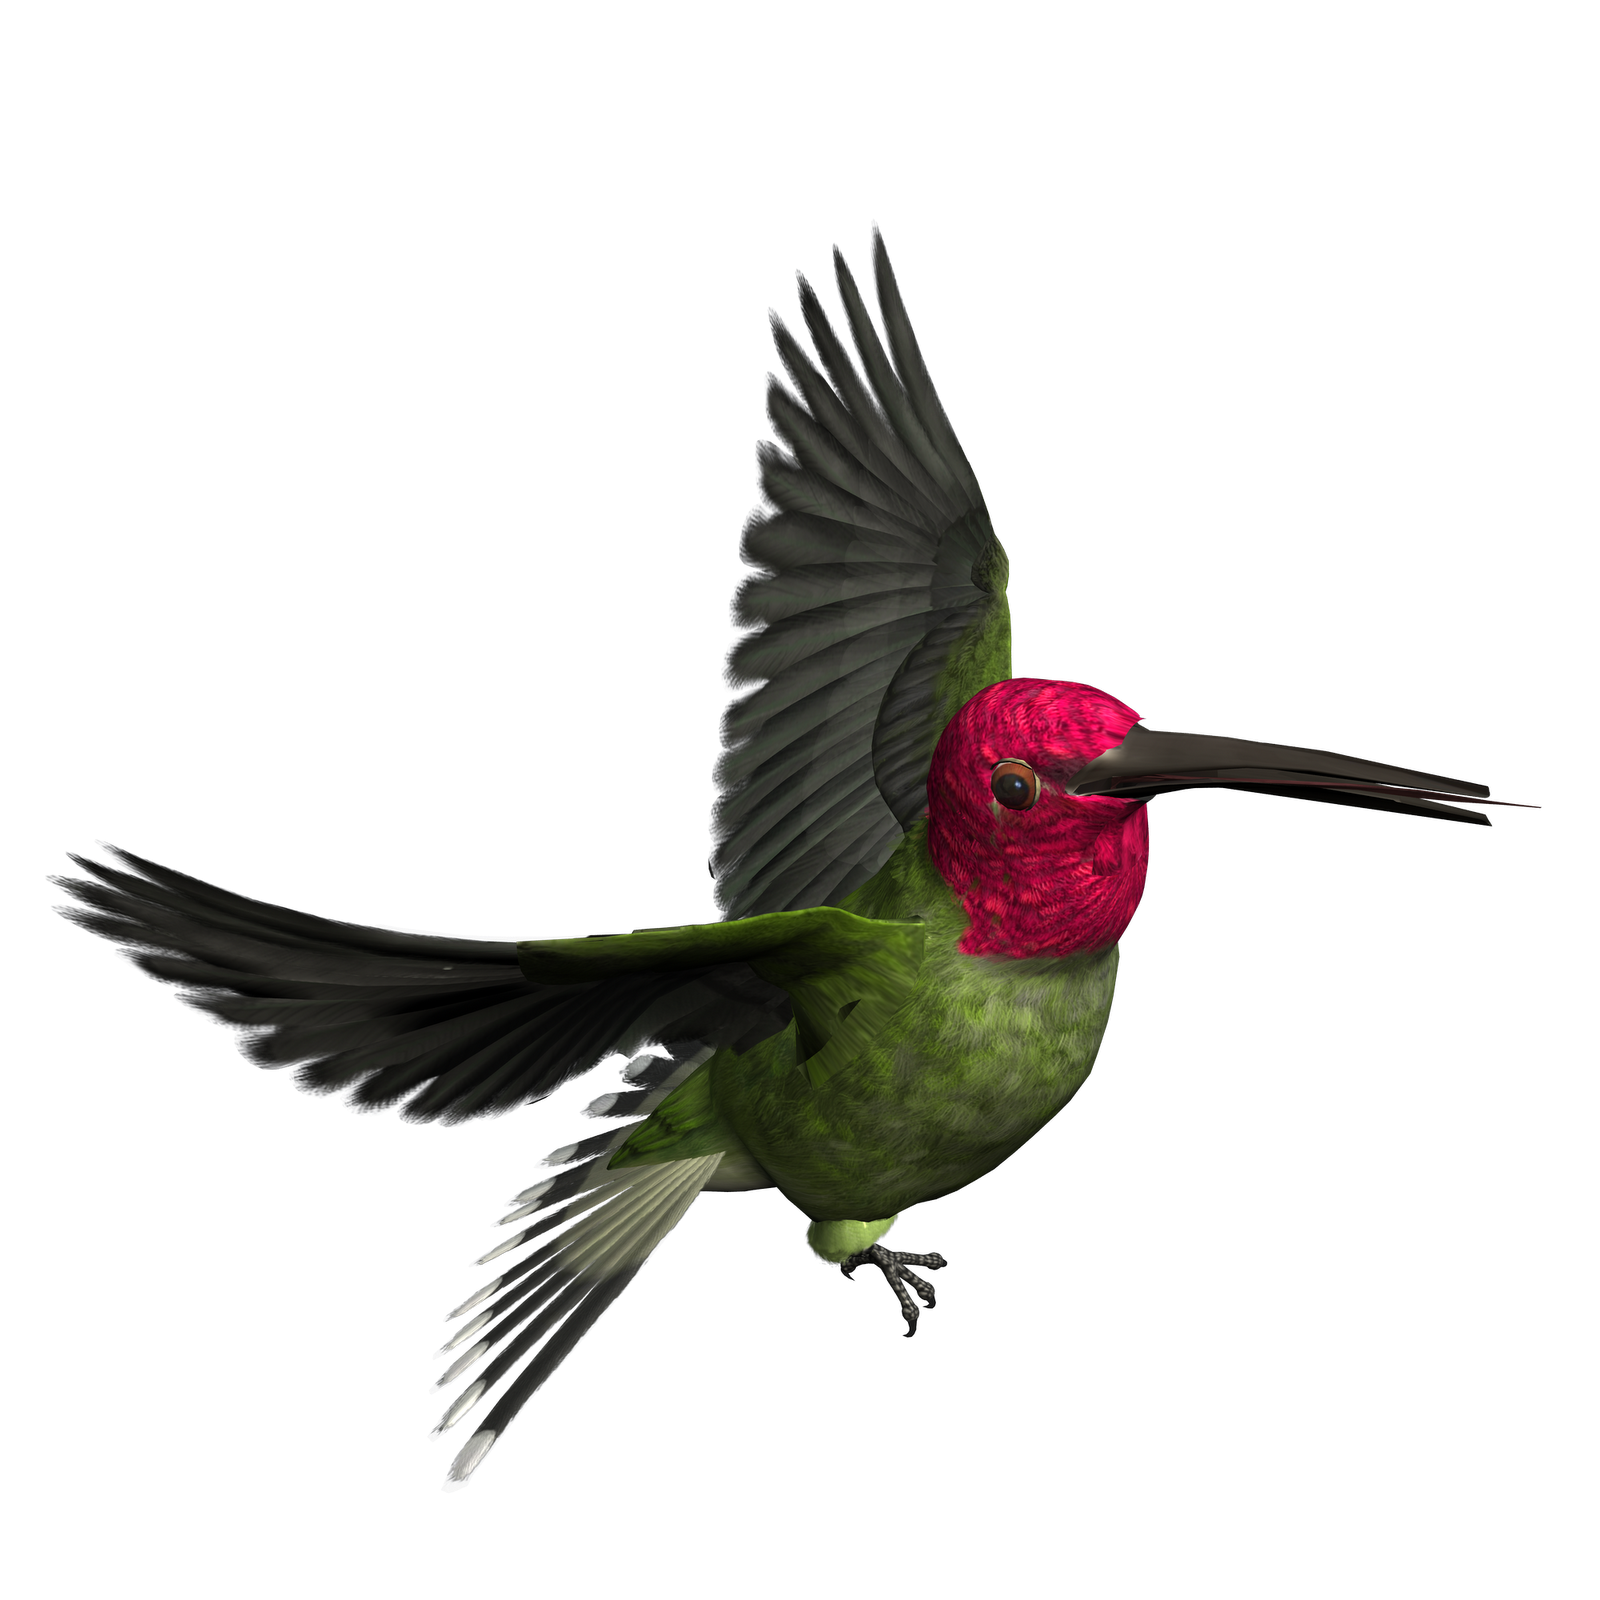 Free Bird Png, Download Free Clip Art, Free Clip Art on.